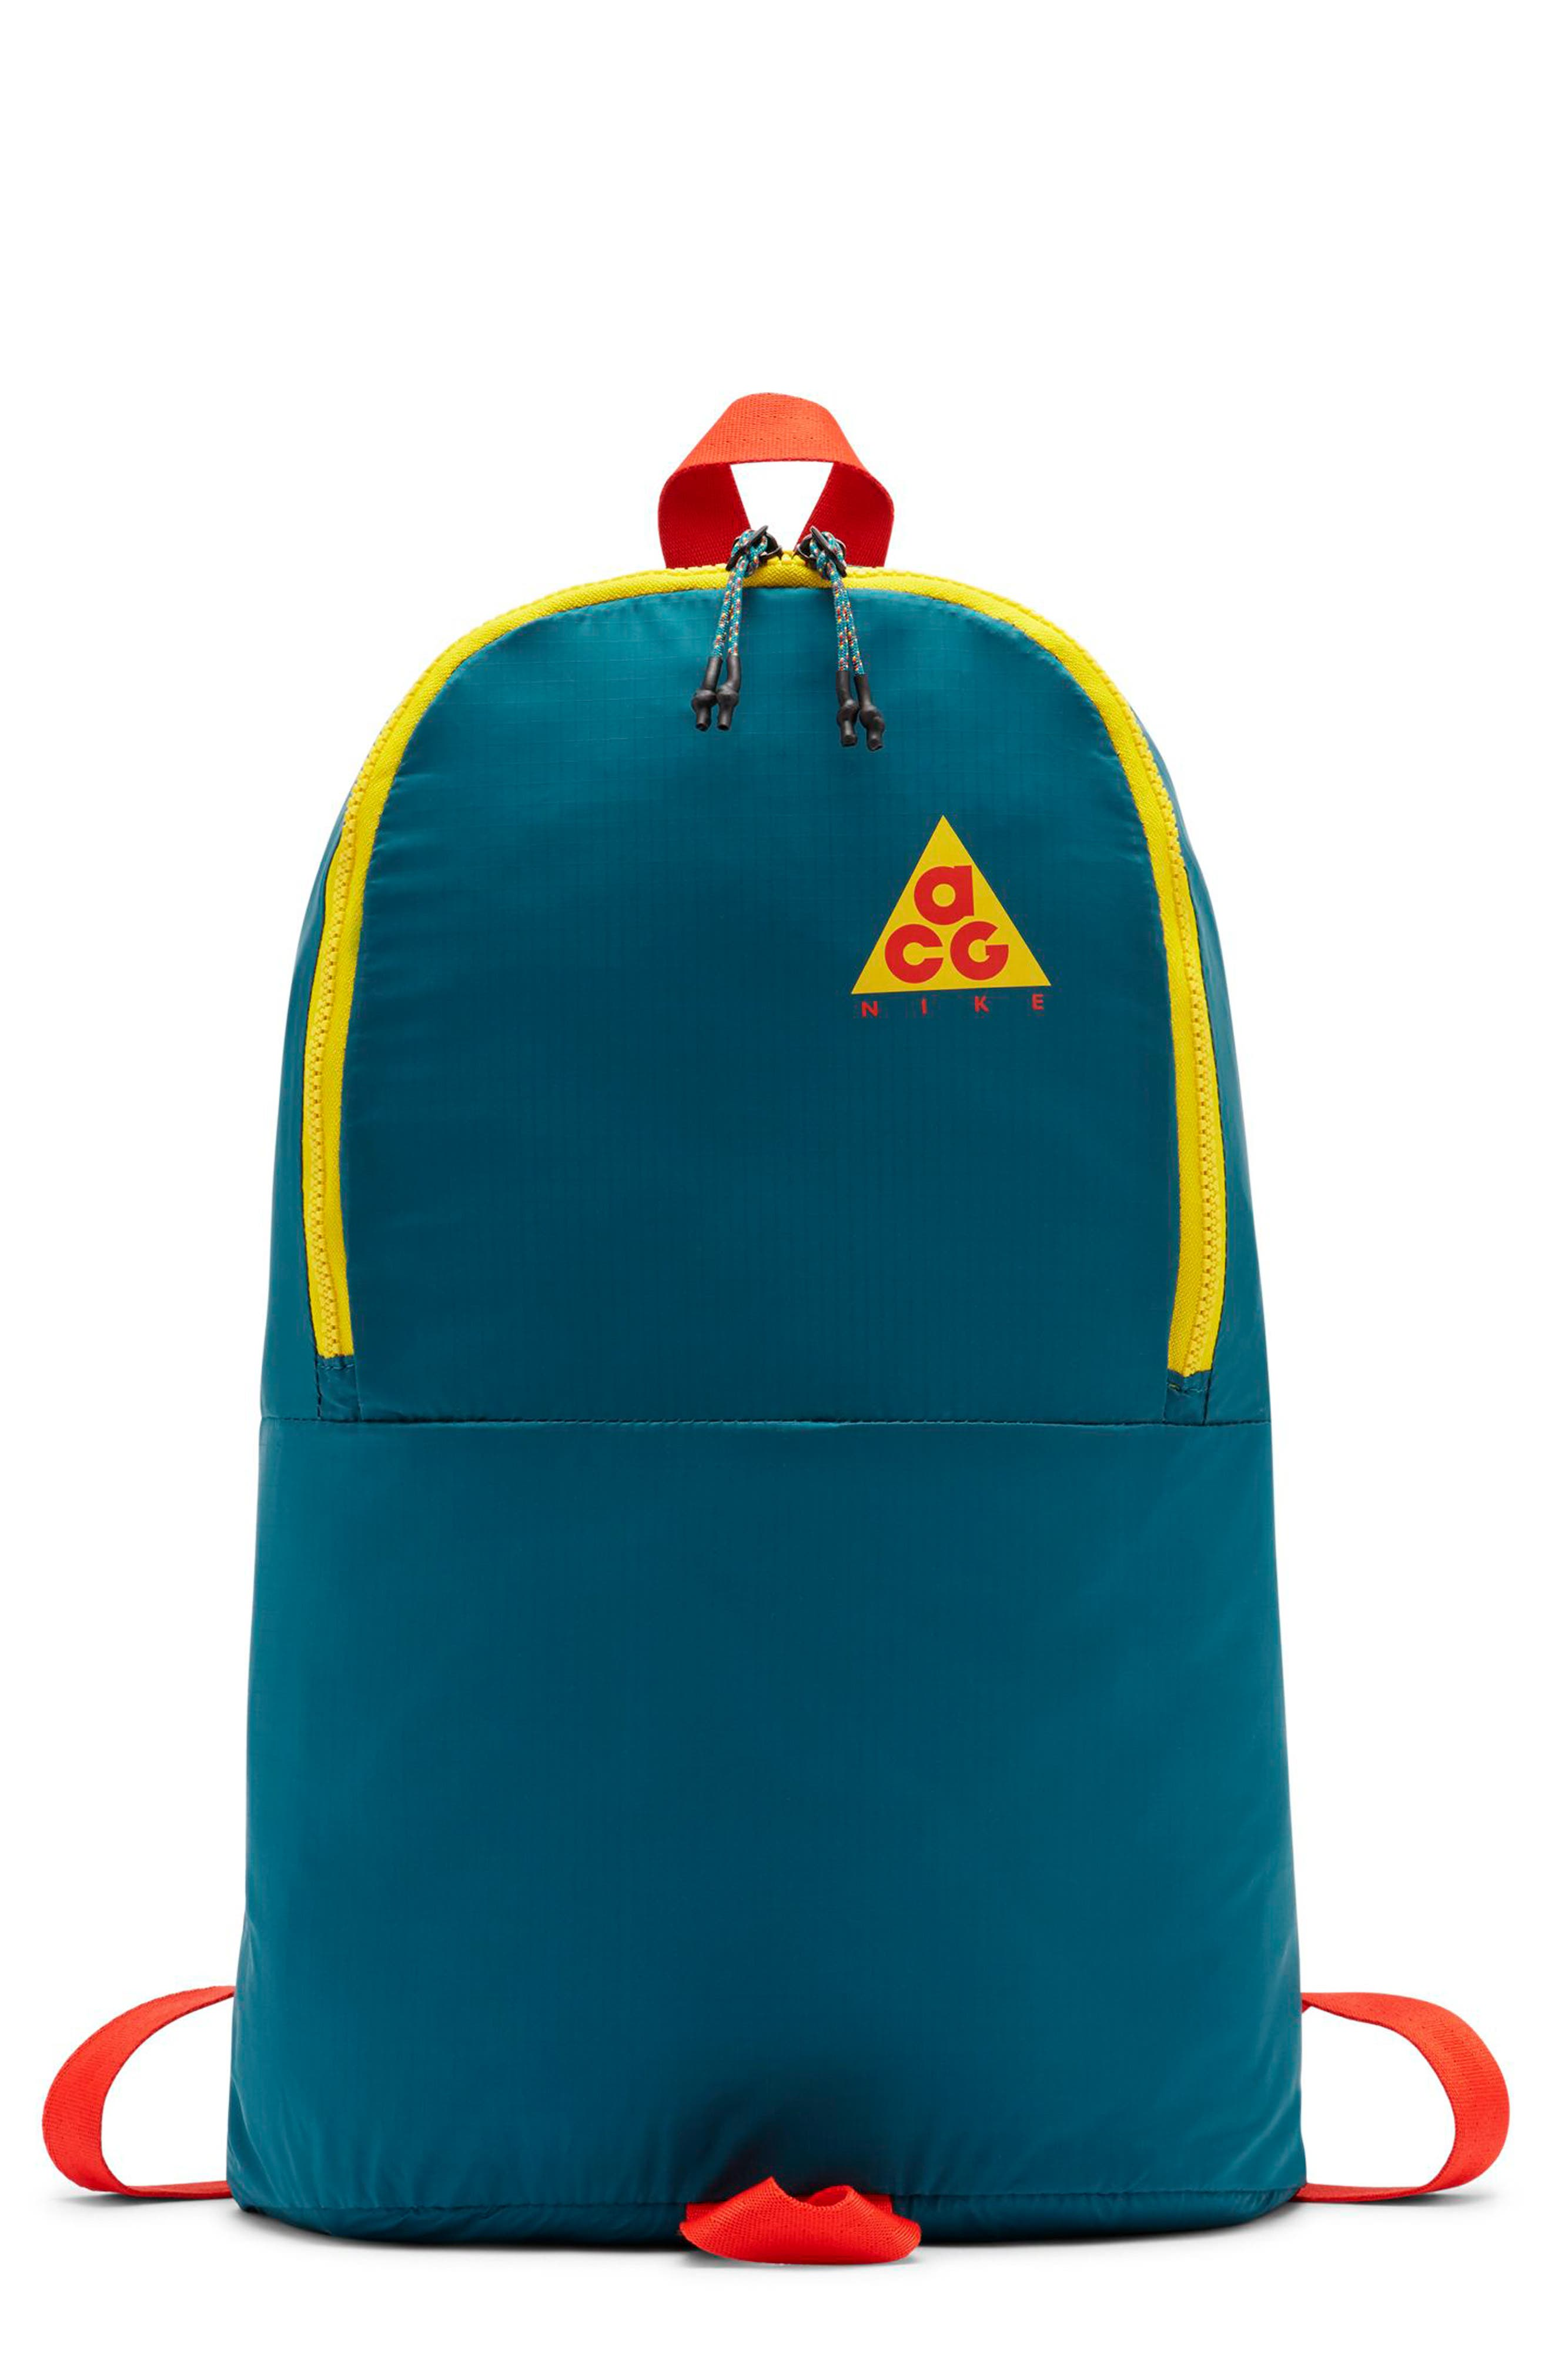 NIKE, ACG Packable Backpack, Main thumbnail 1, color, GEODE TEAL/ GEODE TEAL